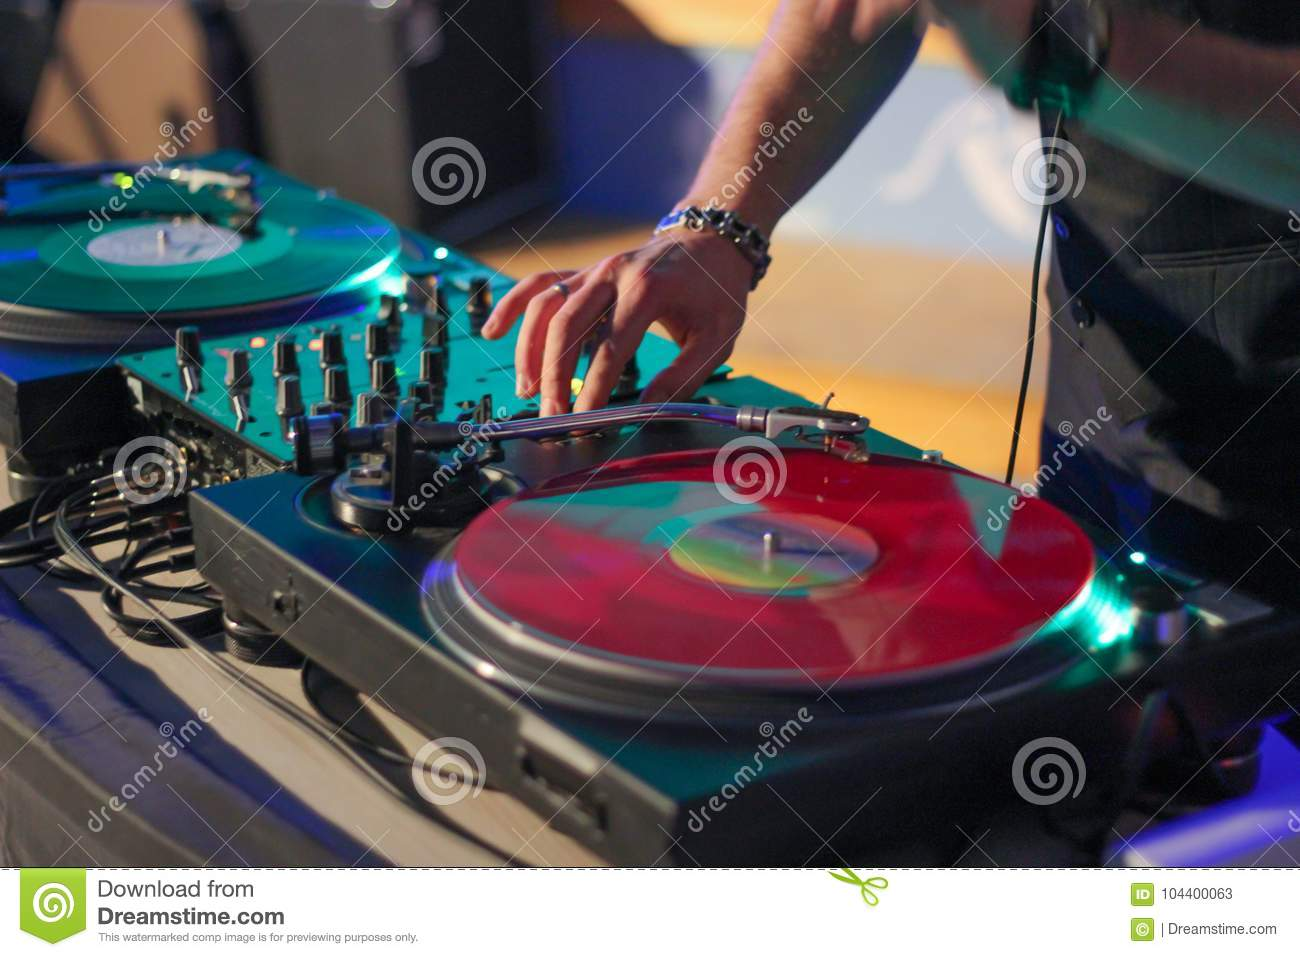 DJ On Vinyl Records Behind The Console Stock Image - Image